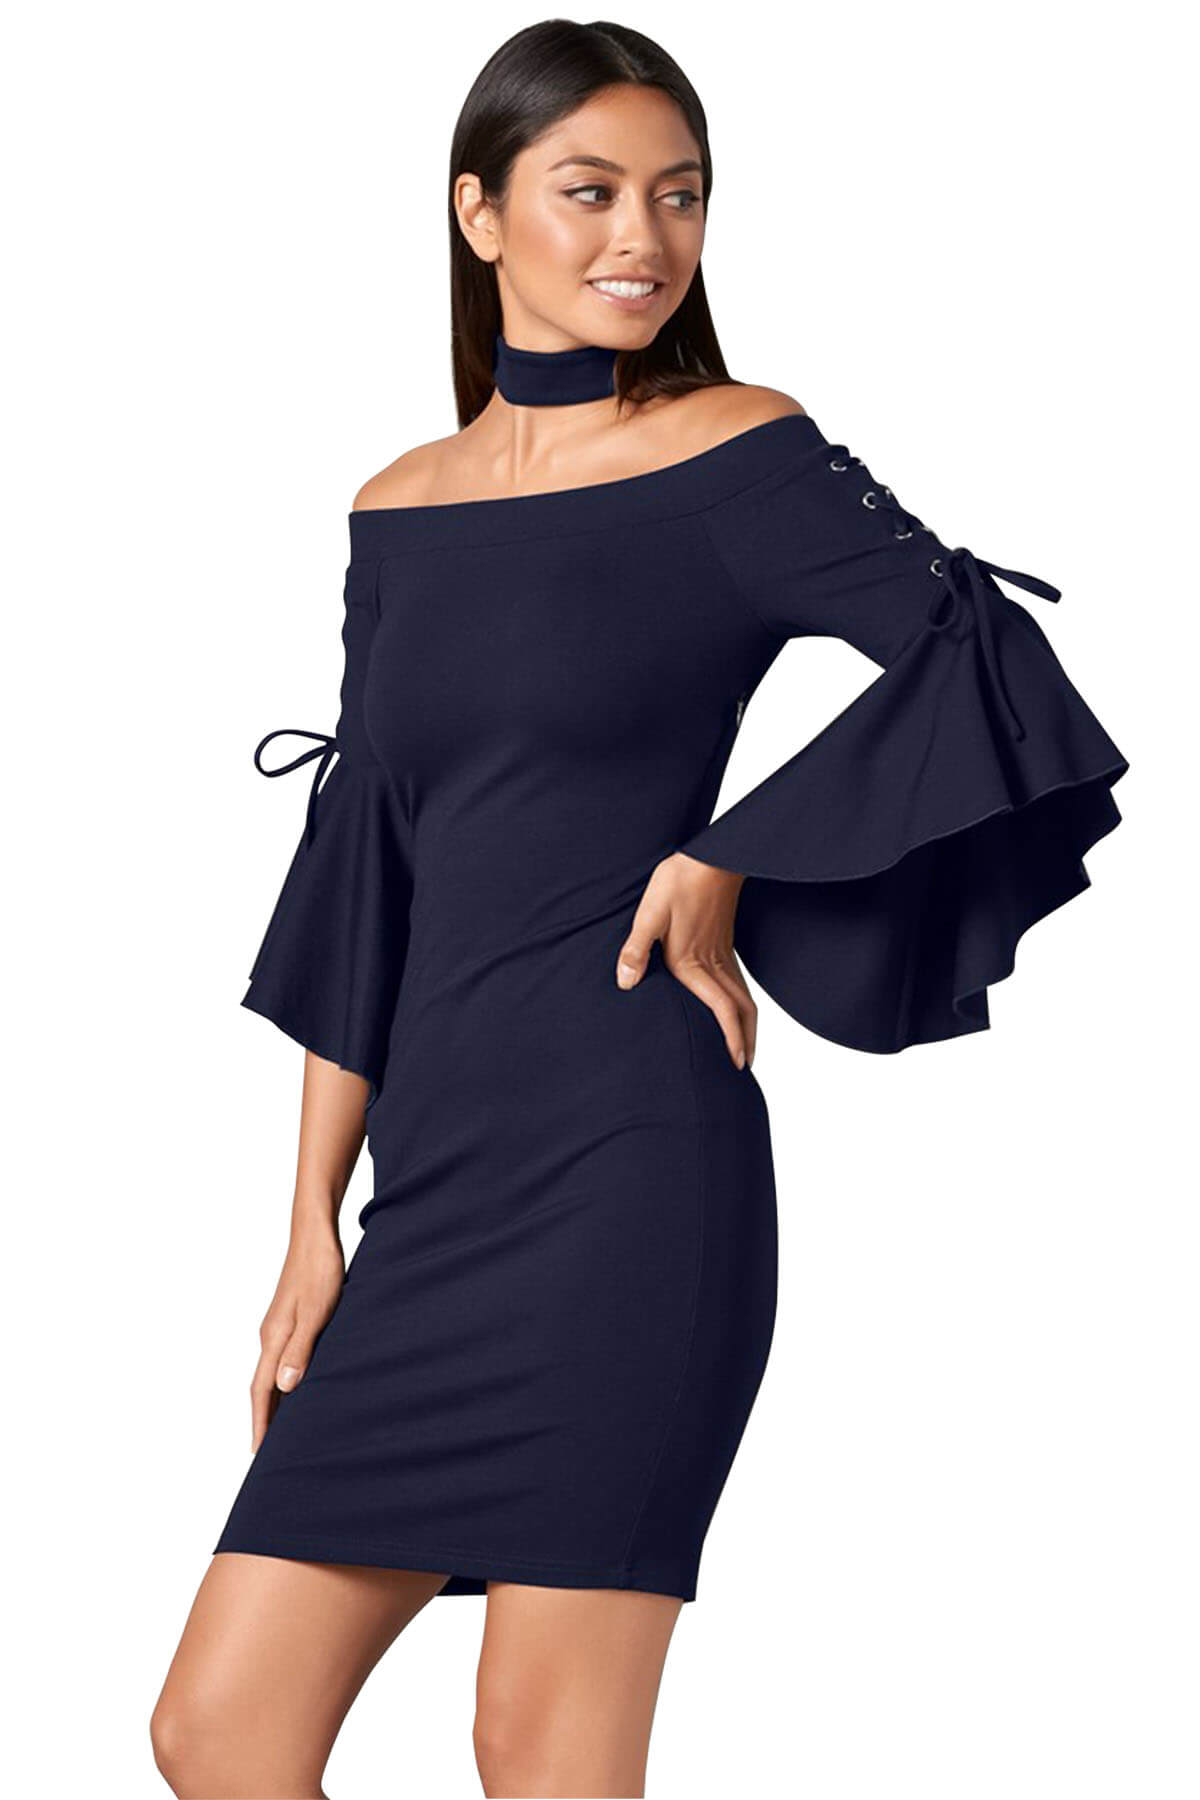 Dress Hot Grommet Lacing Sleeved Navy Choker Dress on Sale Dress